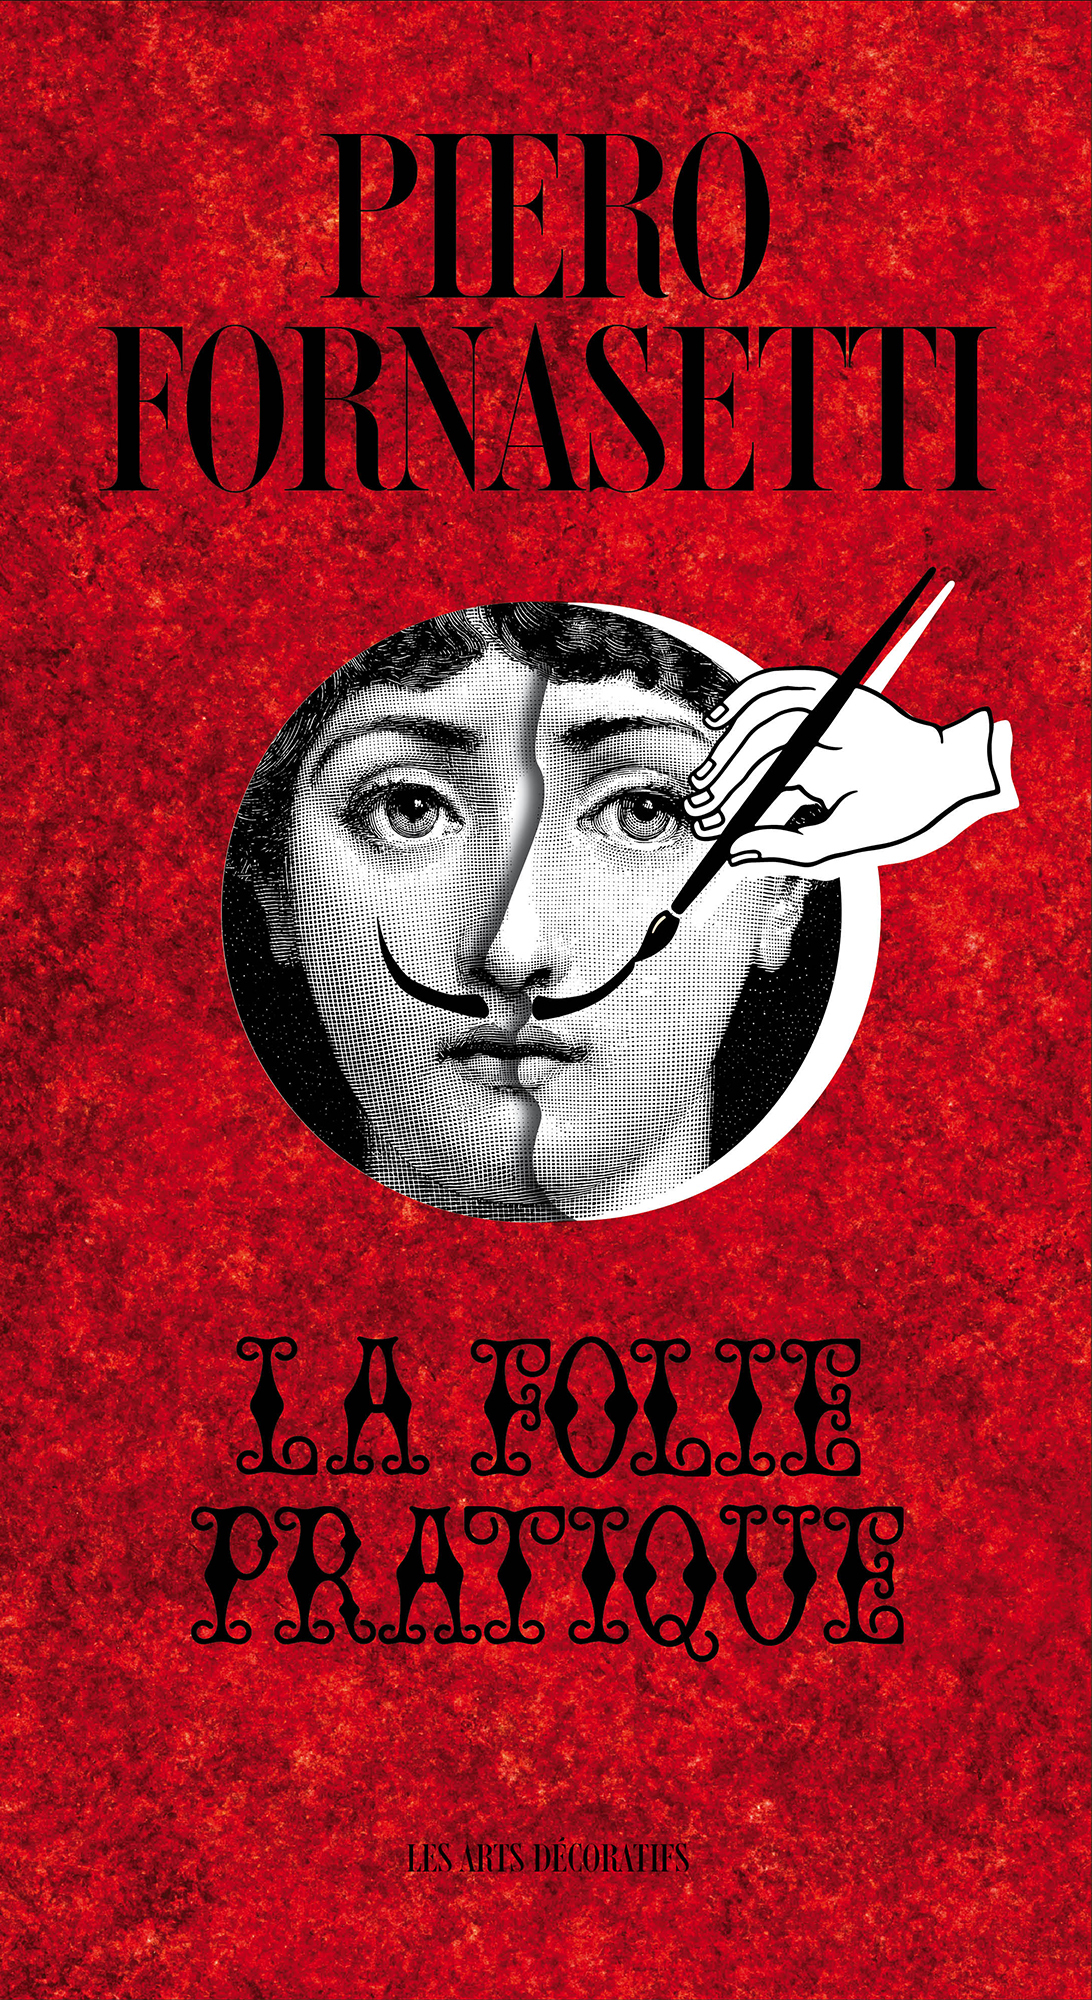 PIERO FORNASETTI. LA FOLIE PRATIQUE.